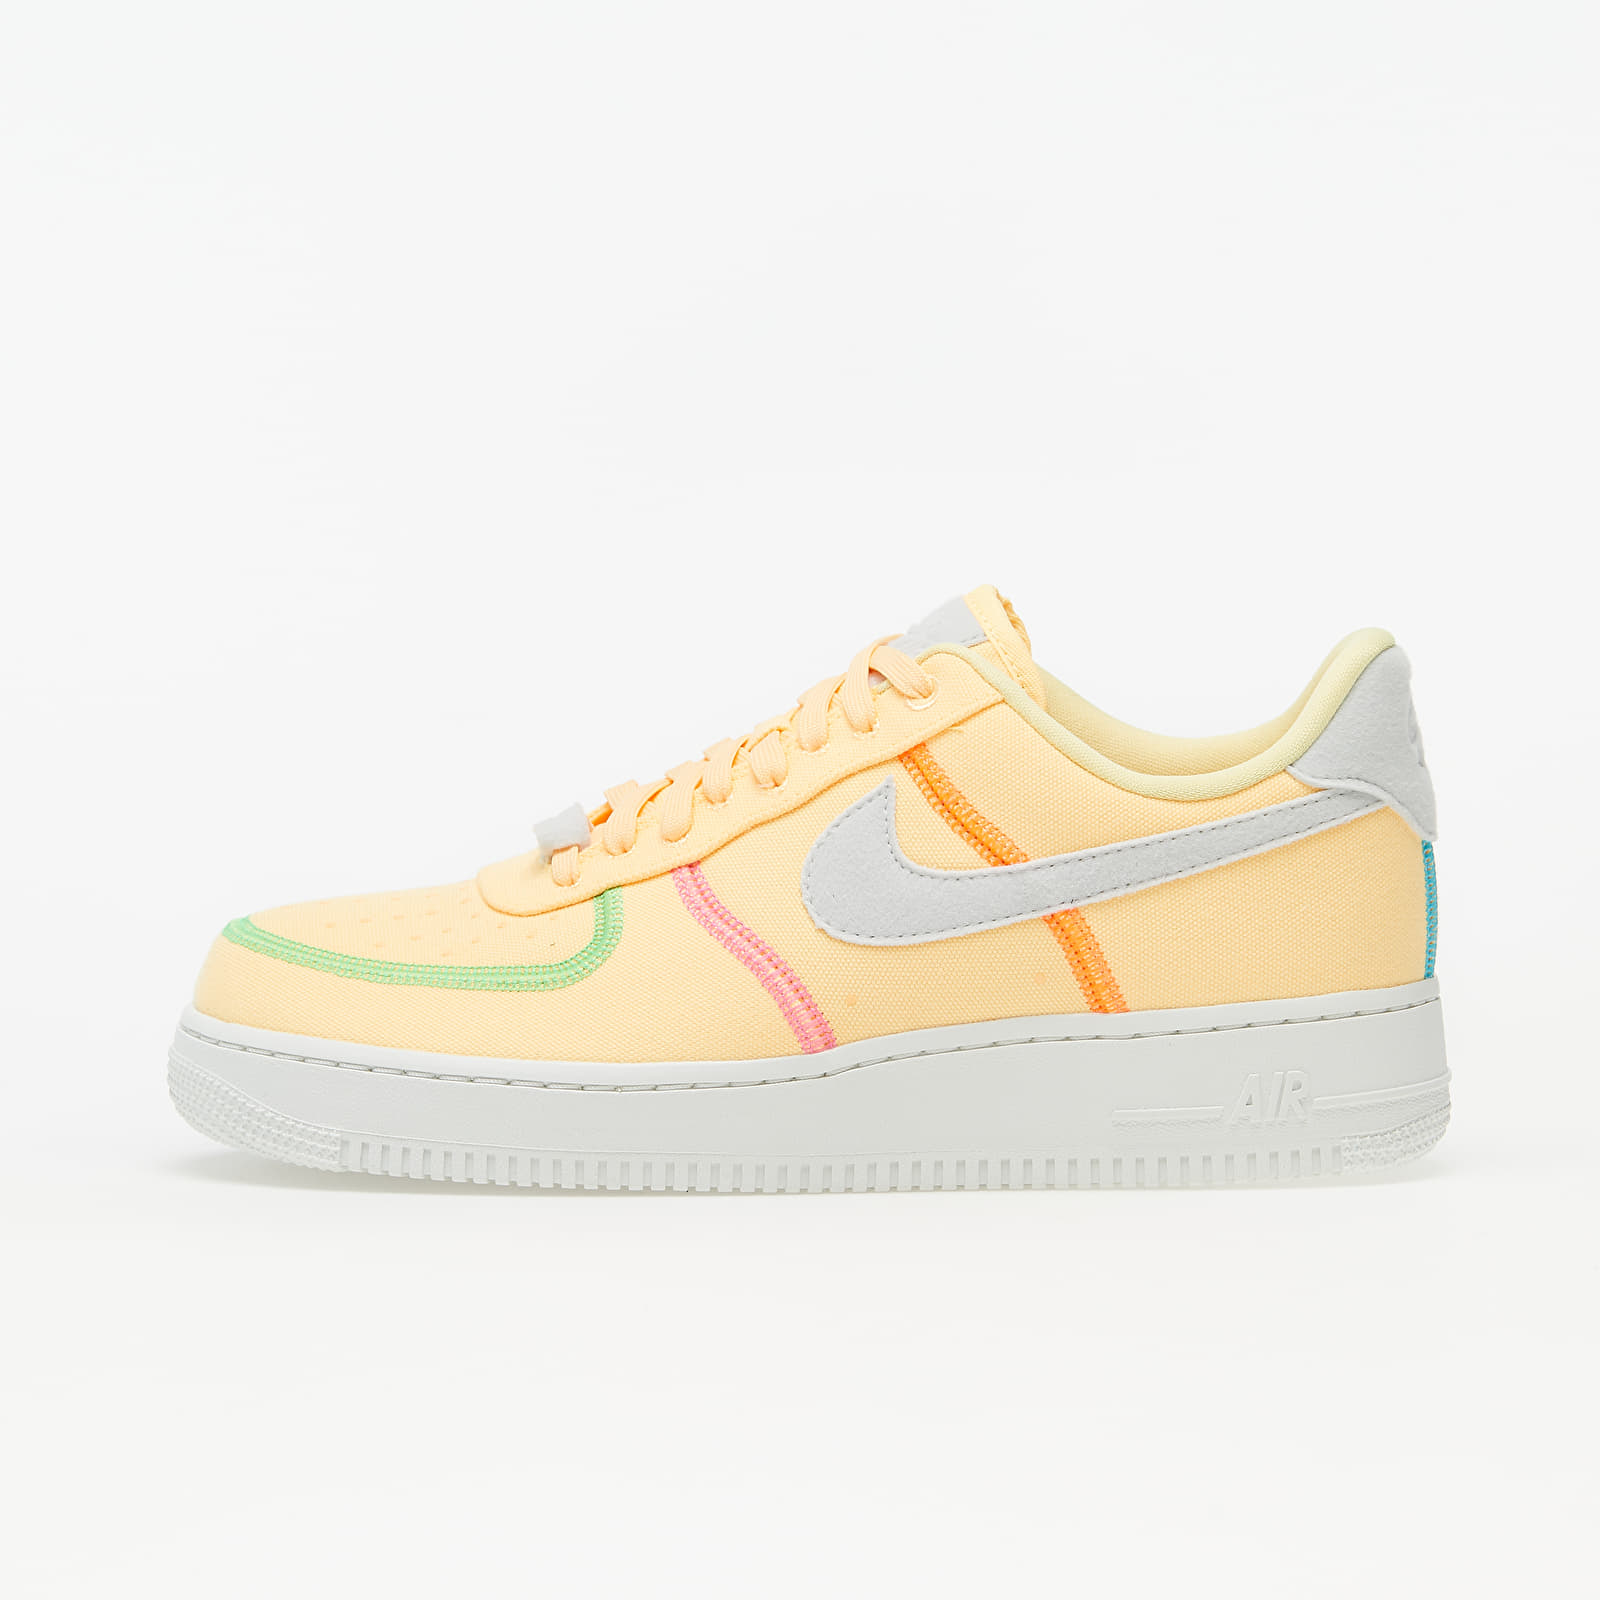 Zapatillas mujer Nike Air Force 1 '07 LX Melon Tint/ Photon Dust-Poison Green